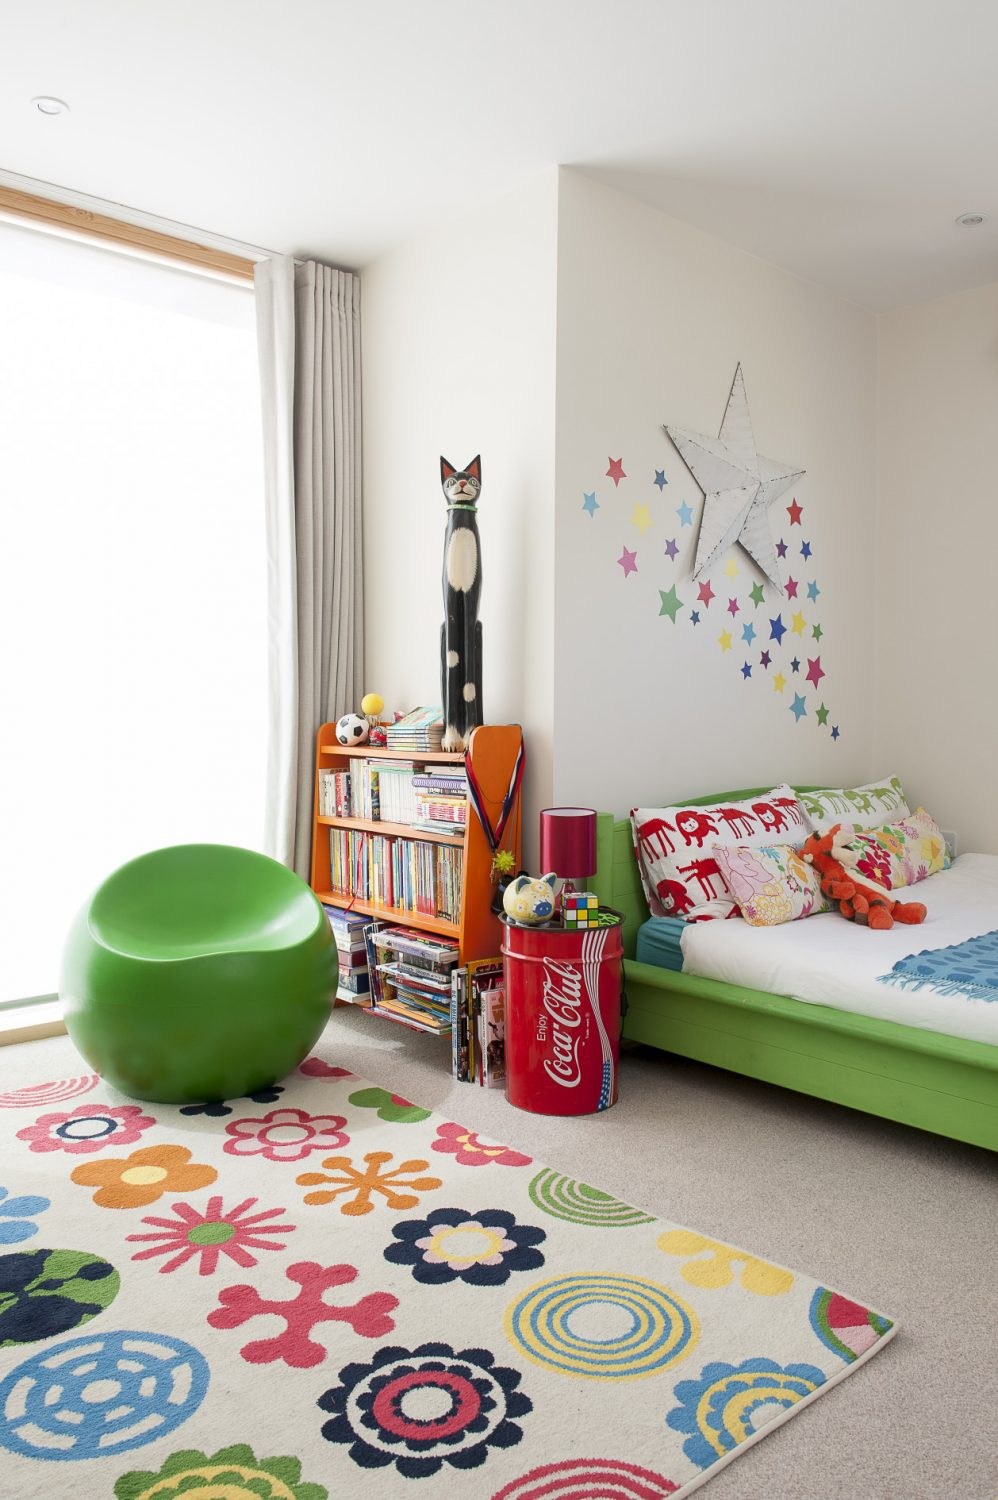 In Jasper's colourfully accessorised room, Jenny has taken an Ikea pine bed and, with the help of Annie Sloan, turned it lime green to match the 60s ball chair. Beside the bed is a Coca Cola drum table and above it a crowd of multi-coloured stars...